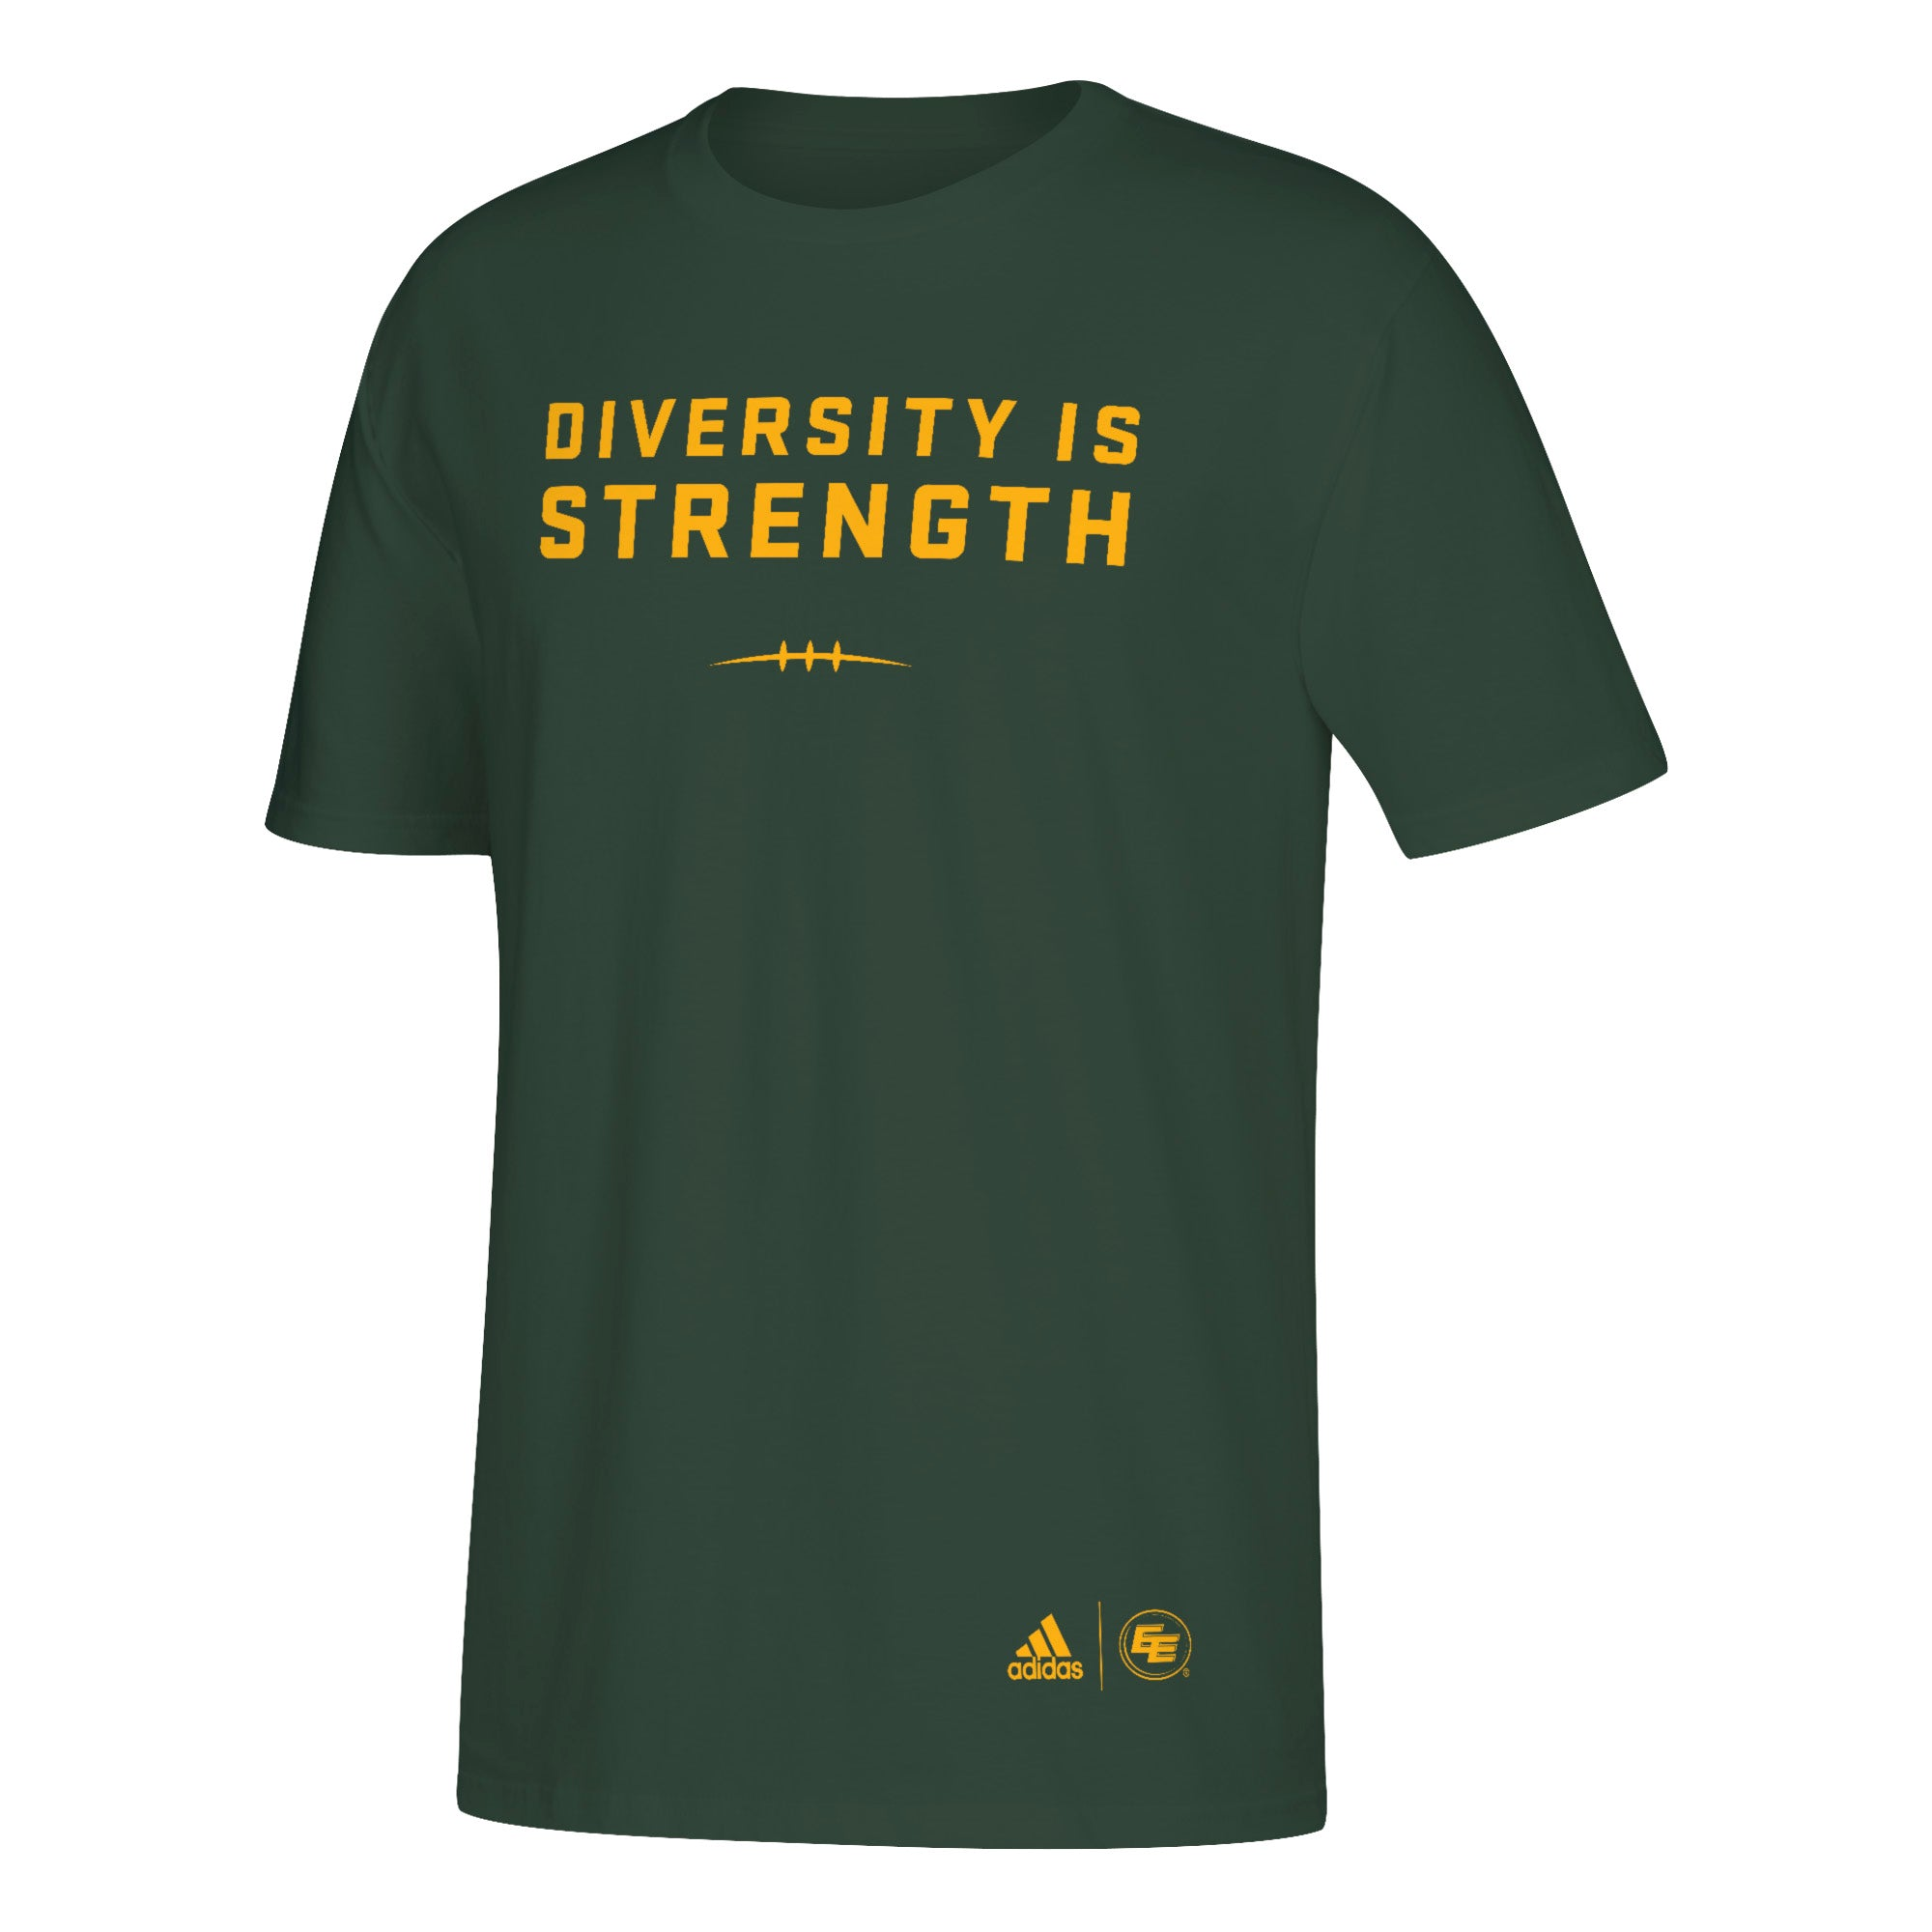 Edmonton Eskimos Diversity is Strength Shirt